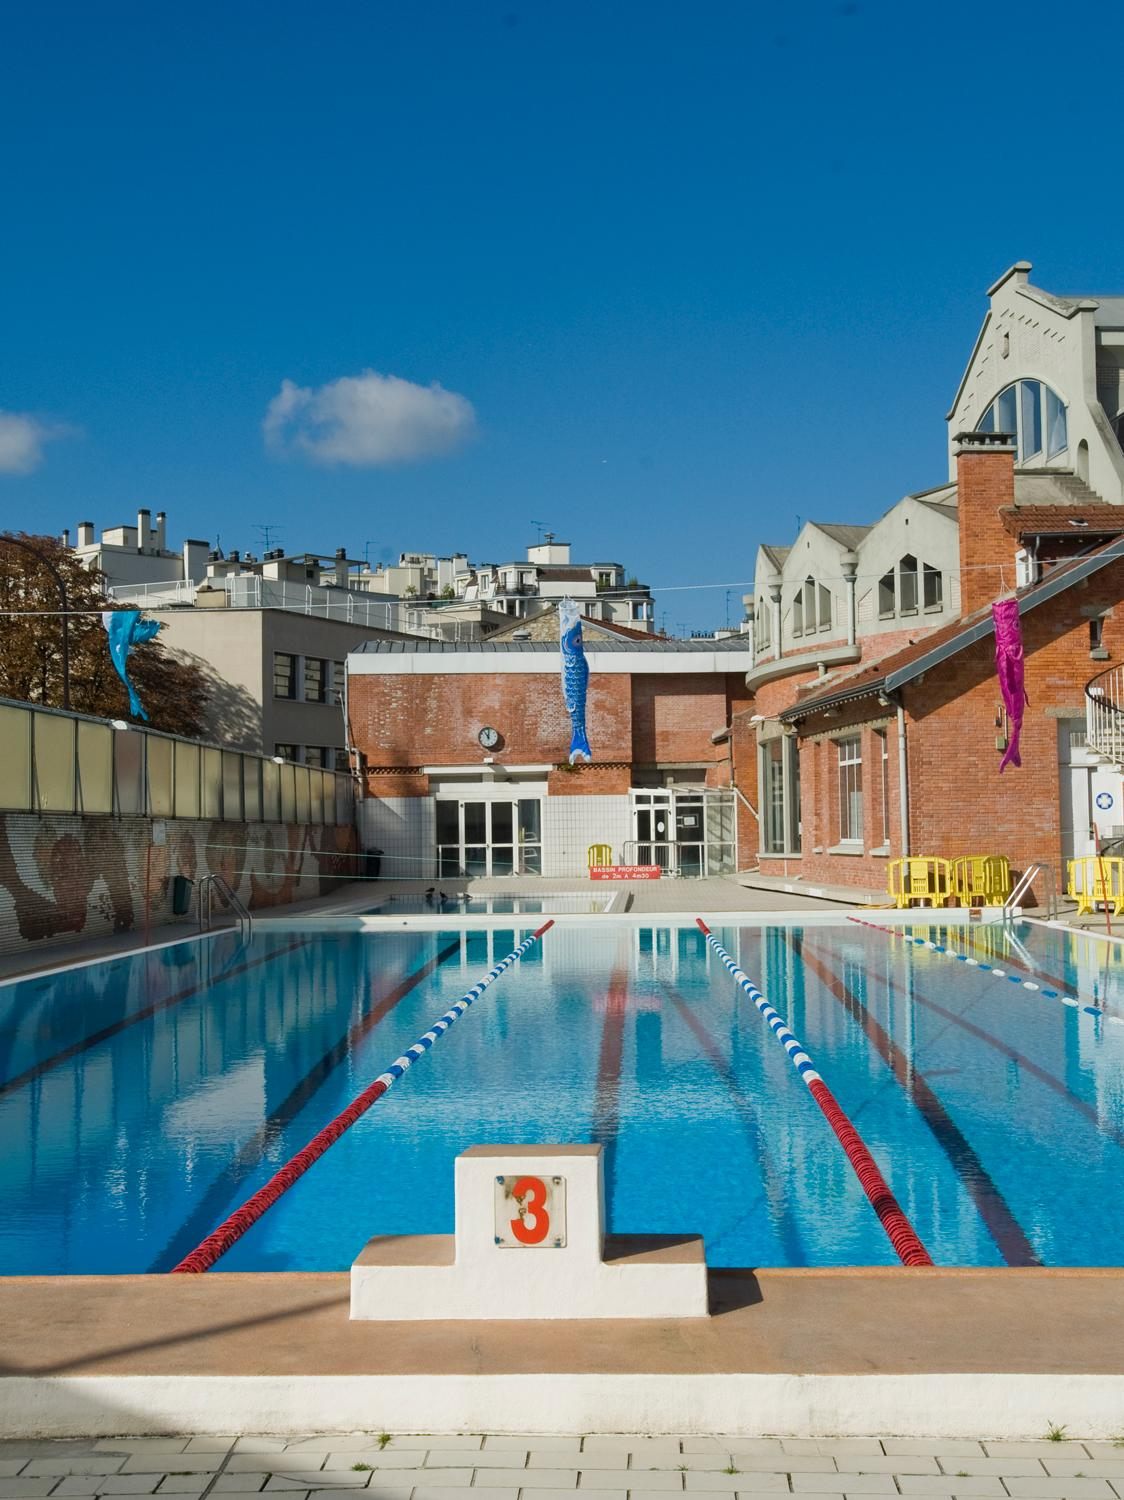 Les piscines de plein air paris pour nager ou pour for Piscine 75019